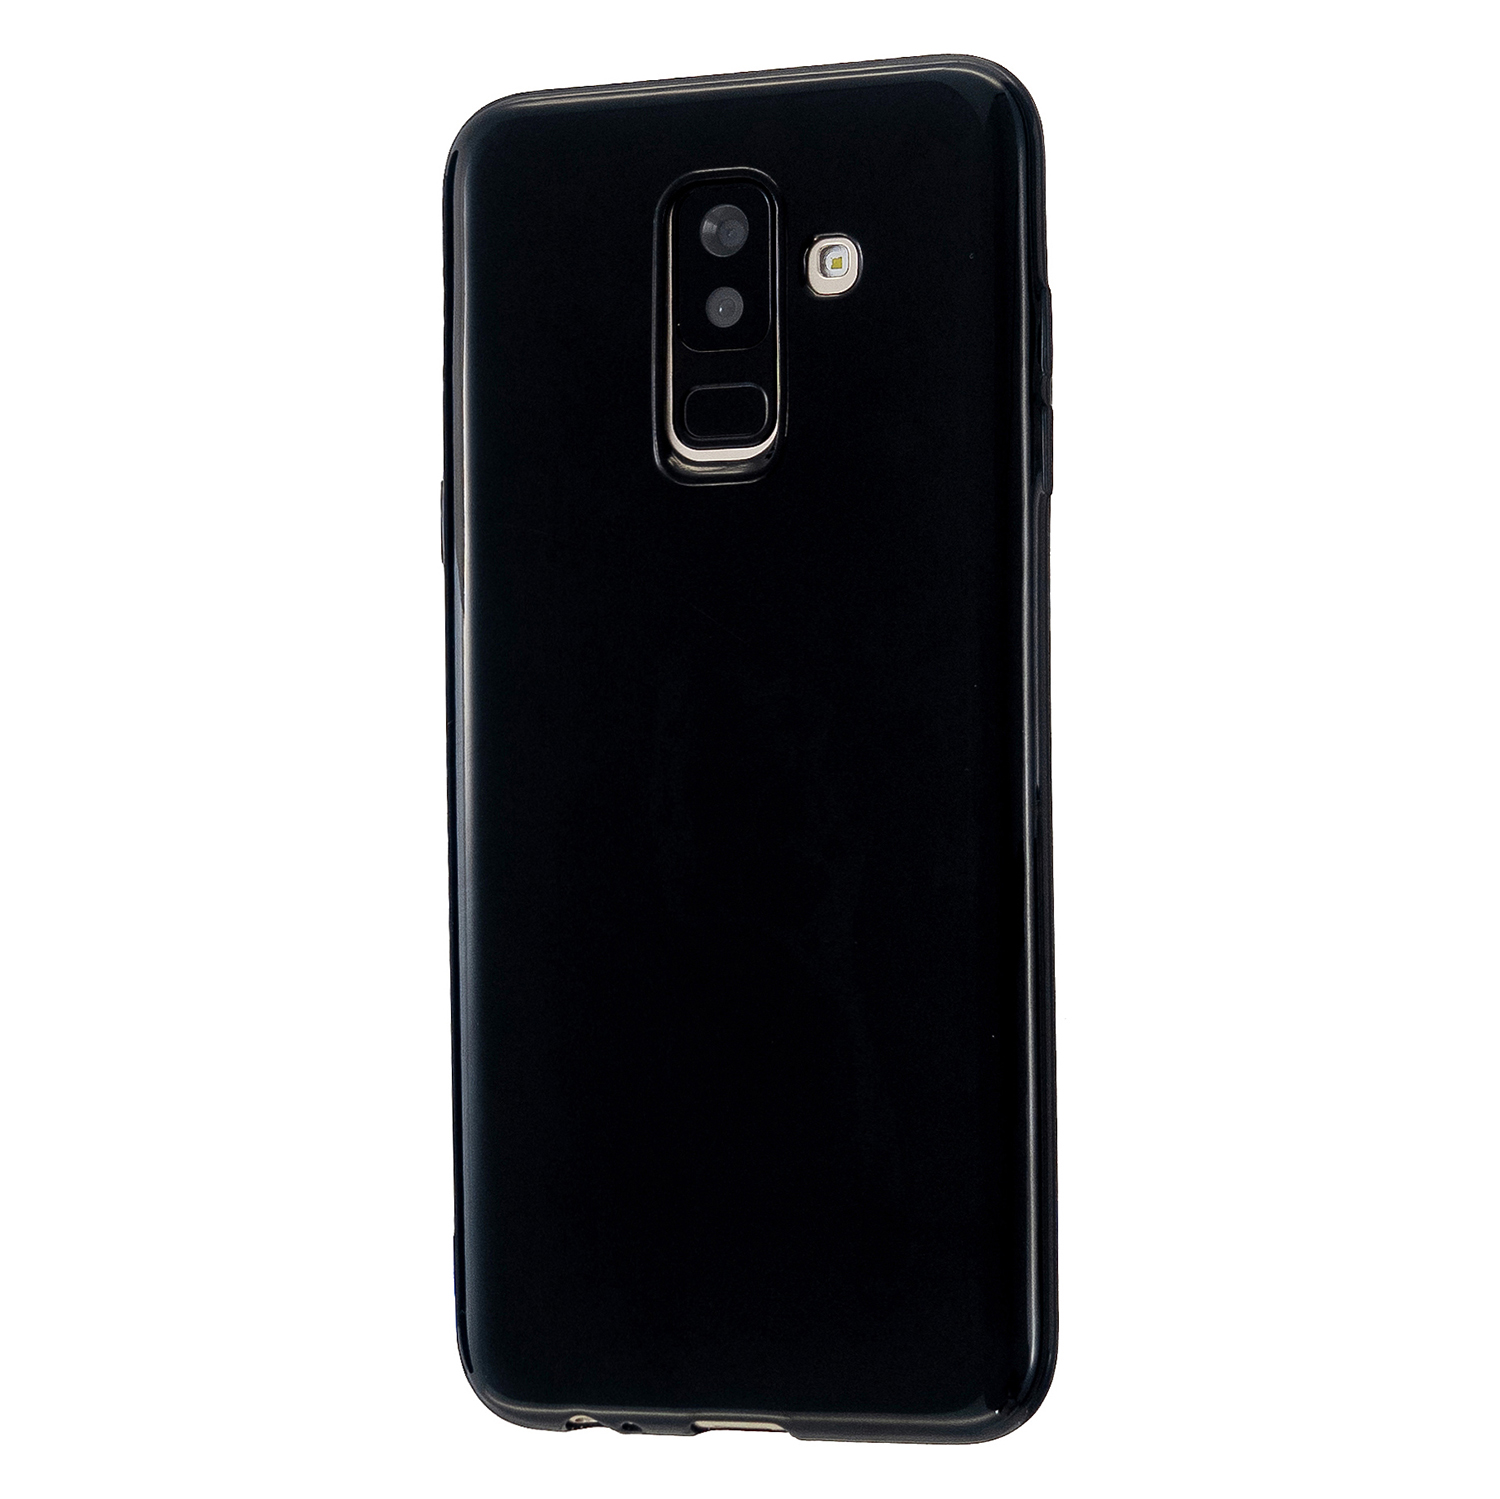 For Samsung A6/A6 Plus 2018 Smartphone Case Soft TPU Precise Cutouts Full Body Protection Mobile Phone Shell Bright black